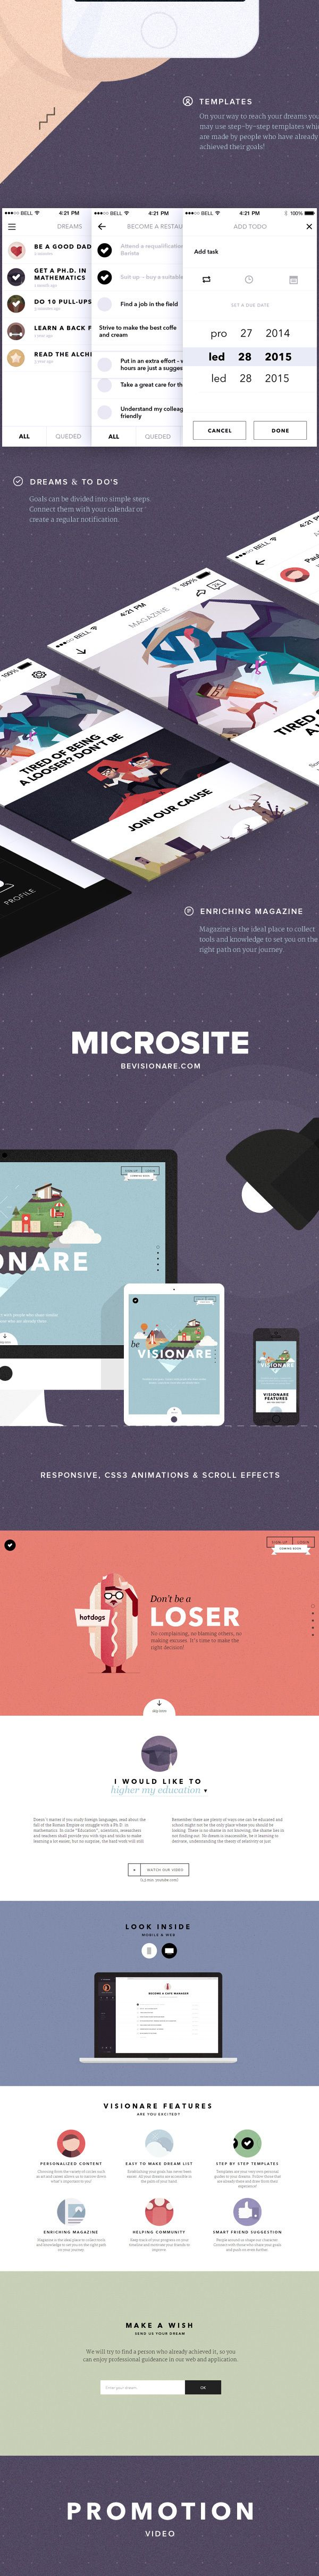 Visionare IOS Mobile App on Behance